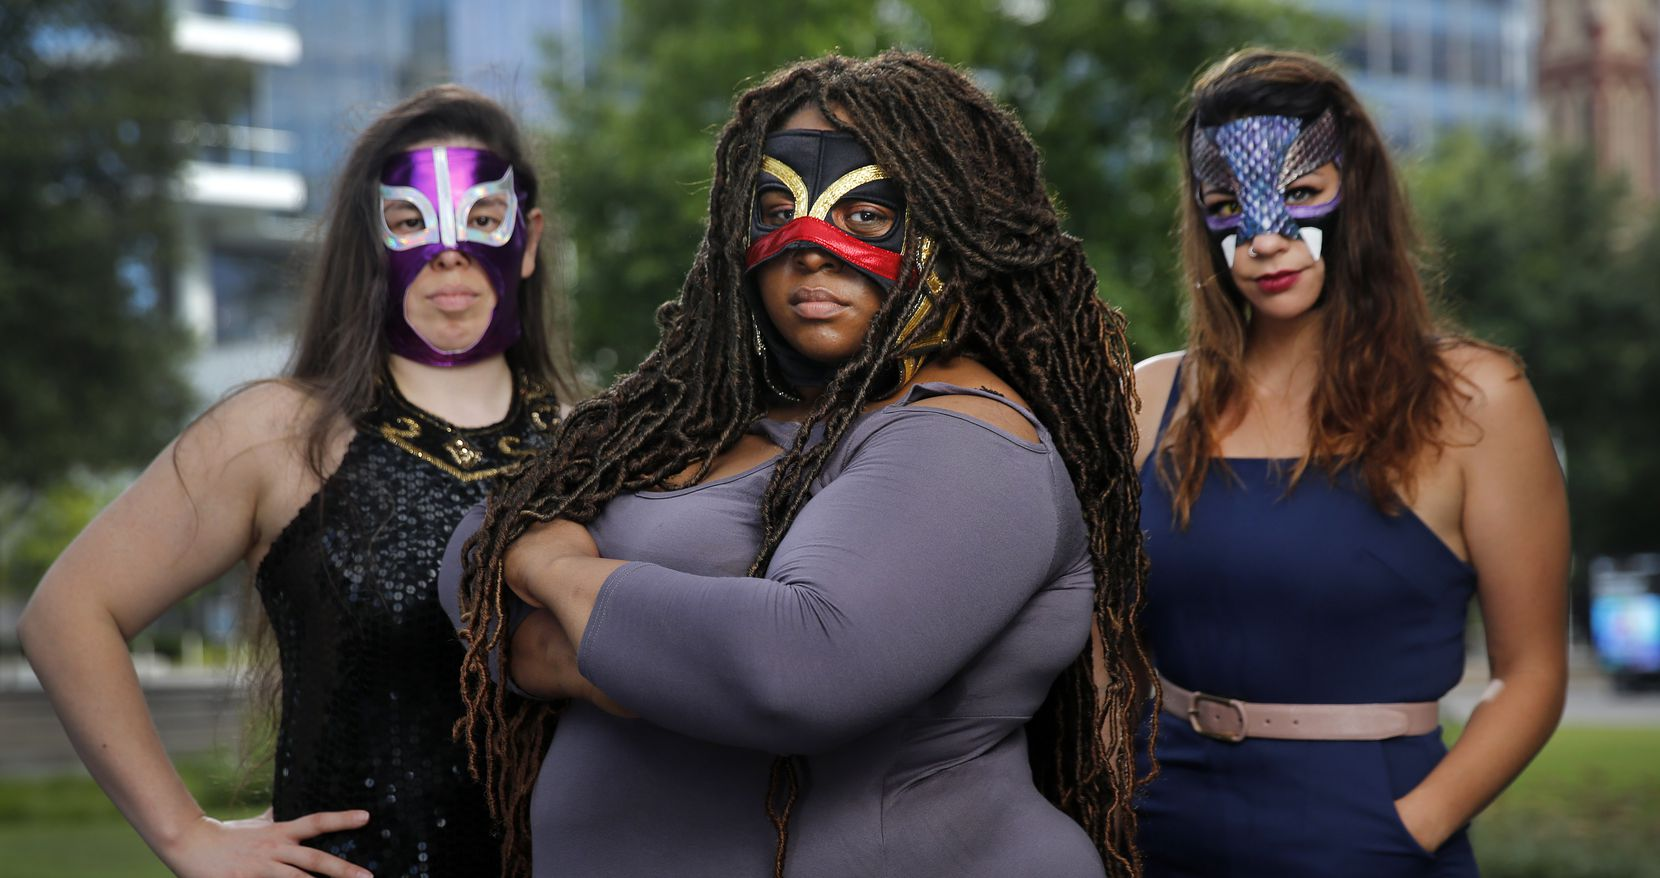 """Tiffany Lang, center, was cast as Coyol in Prism Movement Theater's """"Lucha Teotl,"""" a new play that takes the form of a Mexican lucha libre pro-wrestling storyline, but later left the production. Lang poses in the Dallas Arts District with Jennifer Ramirez and Tatiana Lucia Gantt, who also portray masked luchadores."""